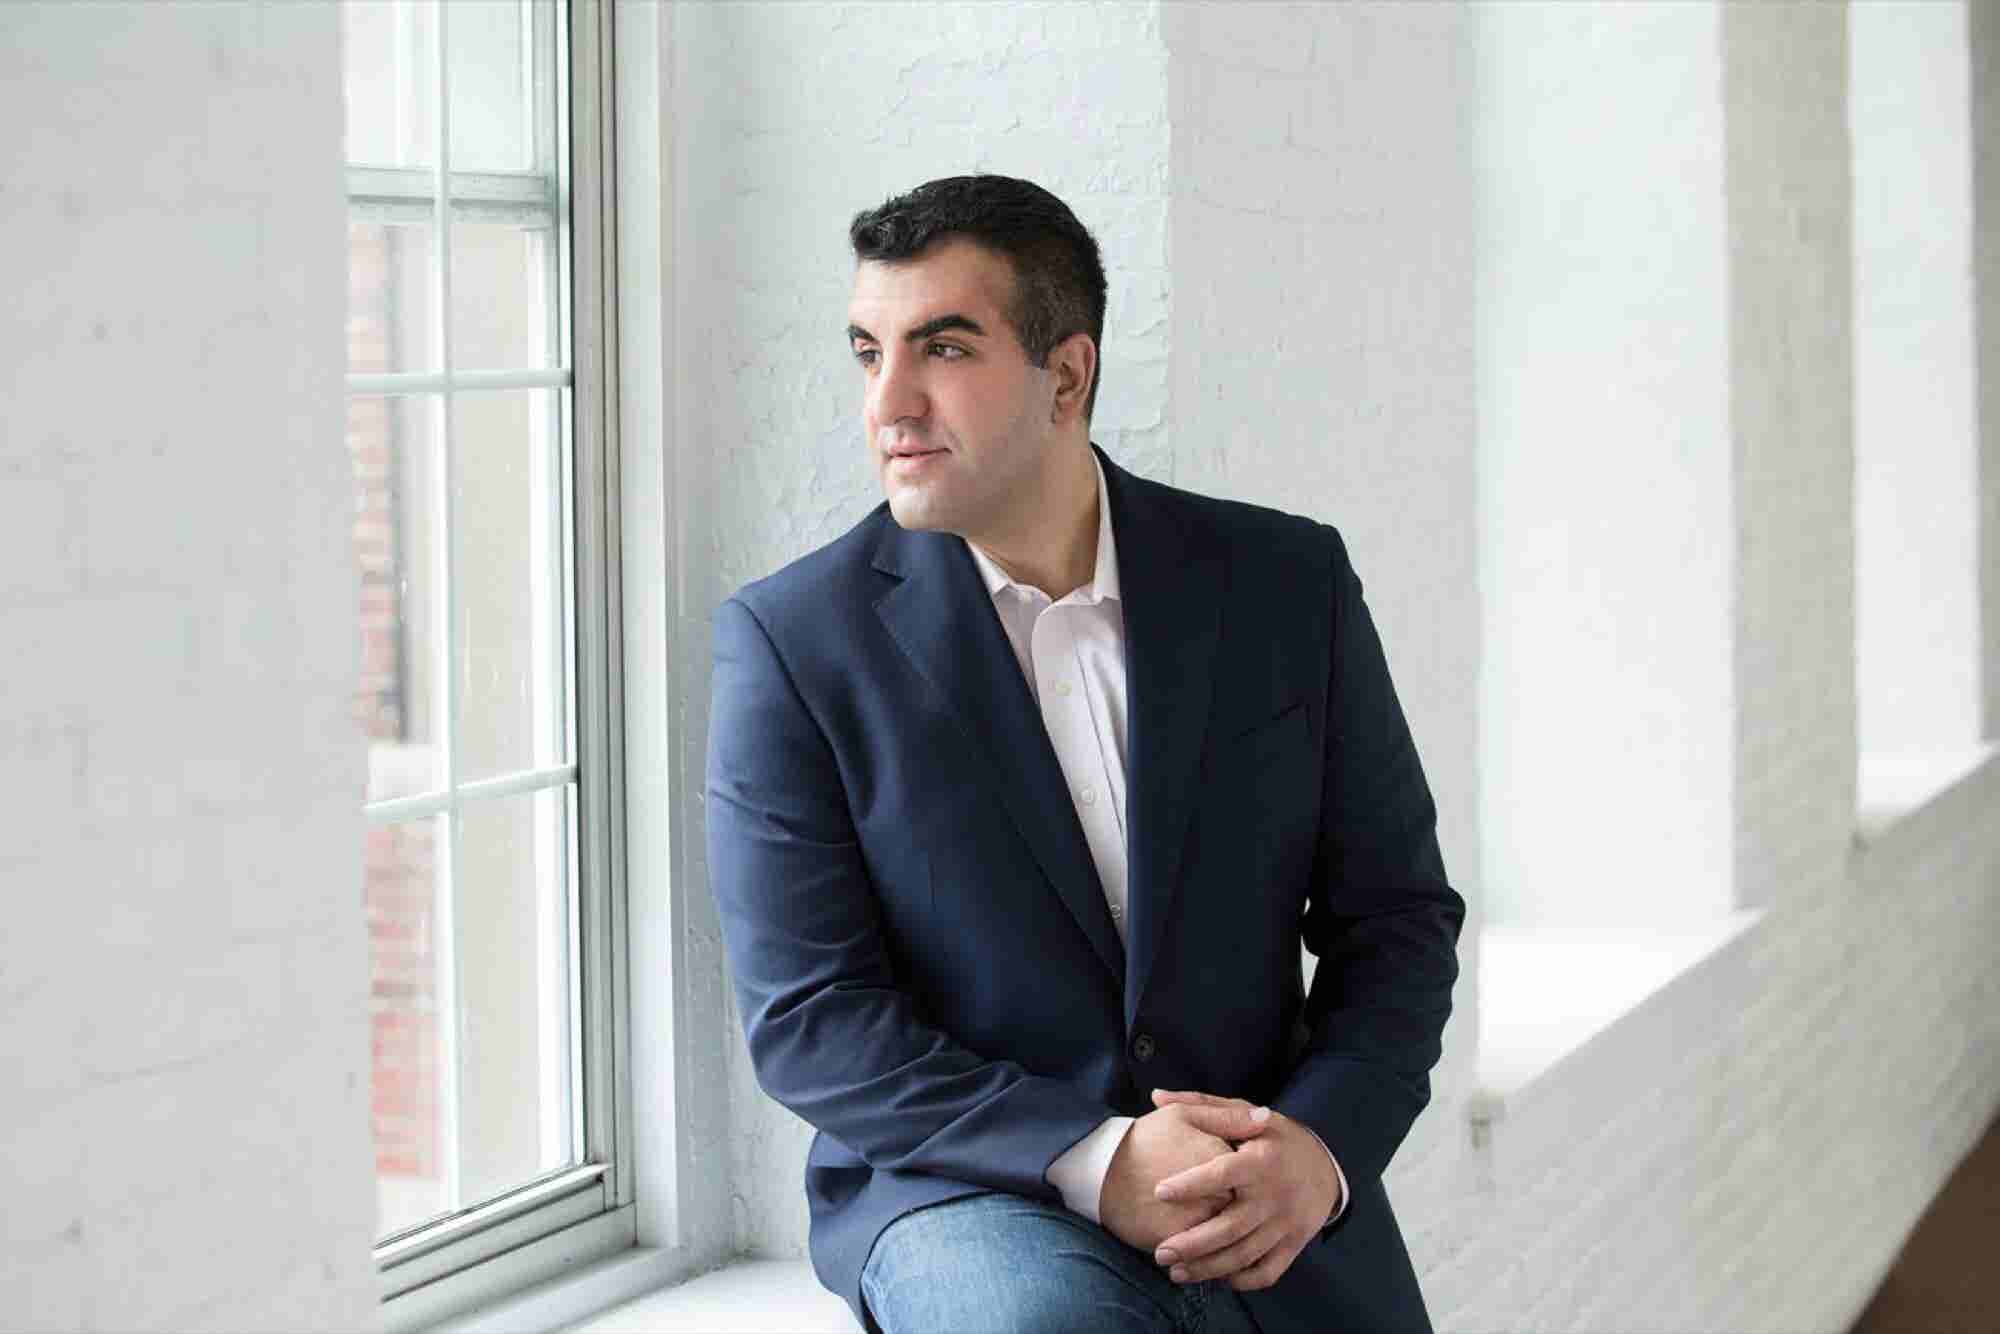 This Entrepreneur Explains How He Survived 150 Rejections From Investors